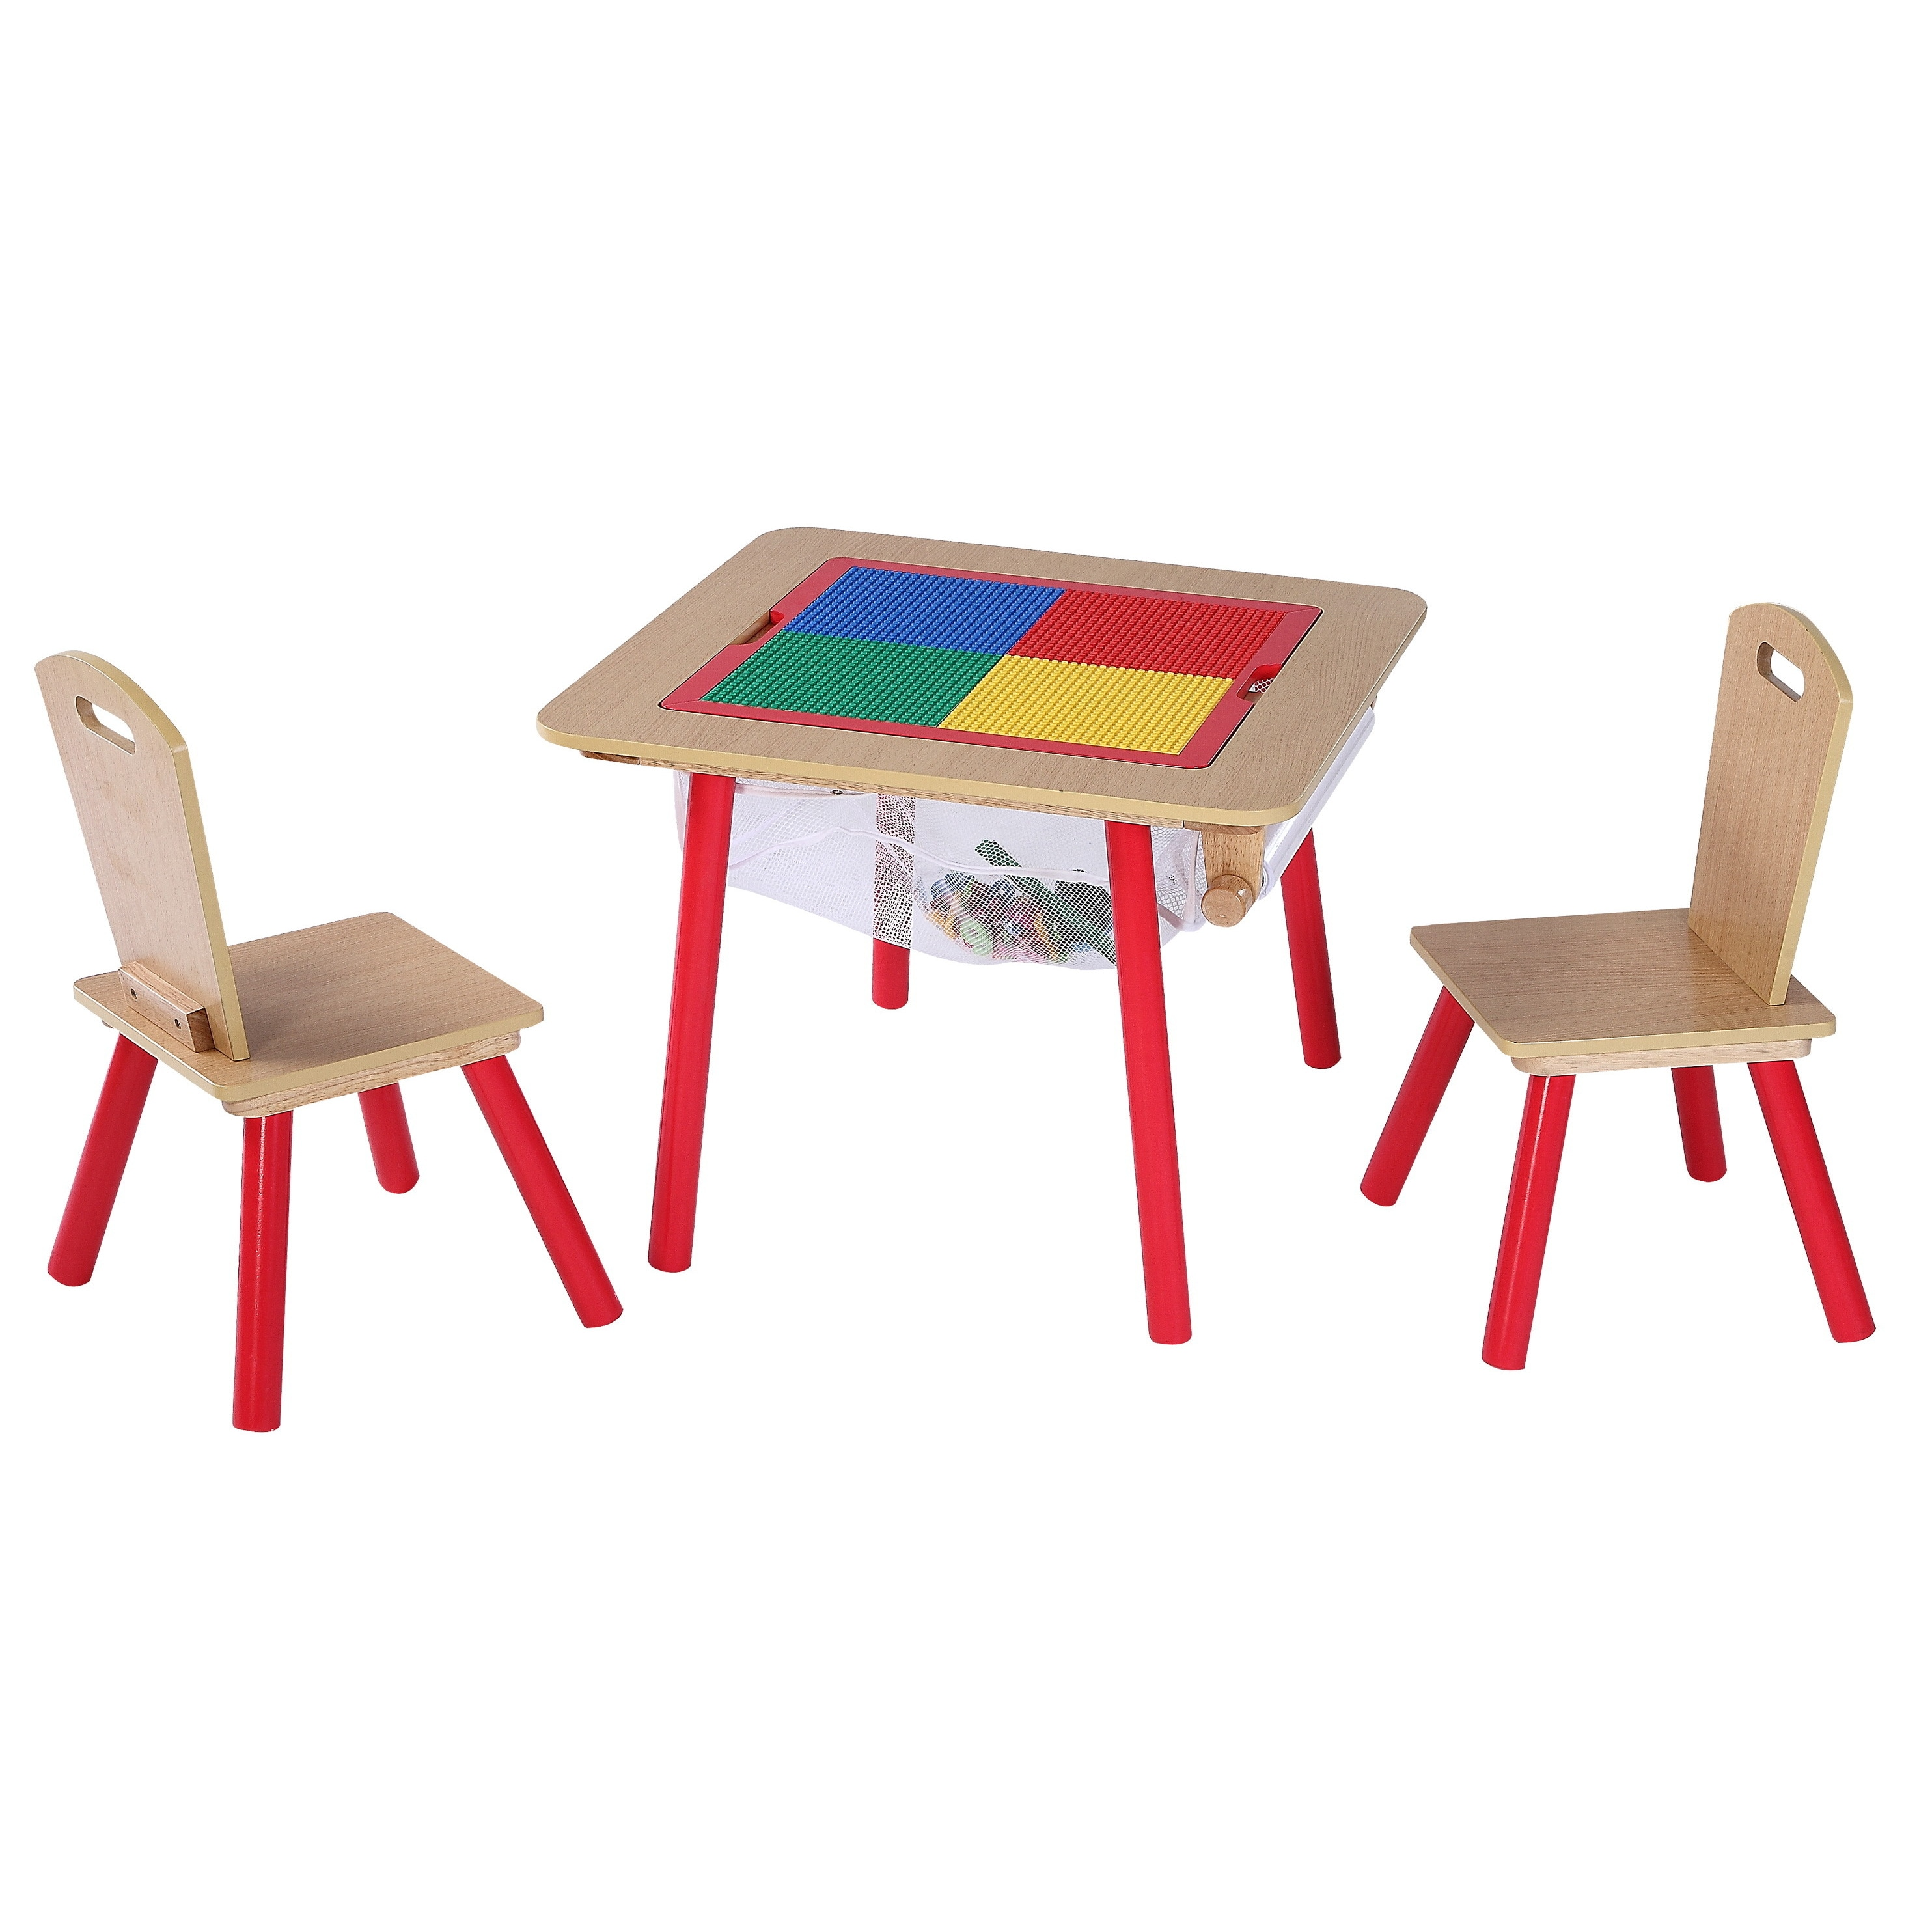 Picture of: O Kids 4 In 1 Flip Top Multi Function Table And Chairs Set Overstock 12739748